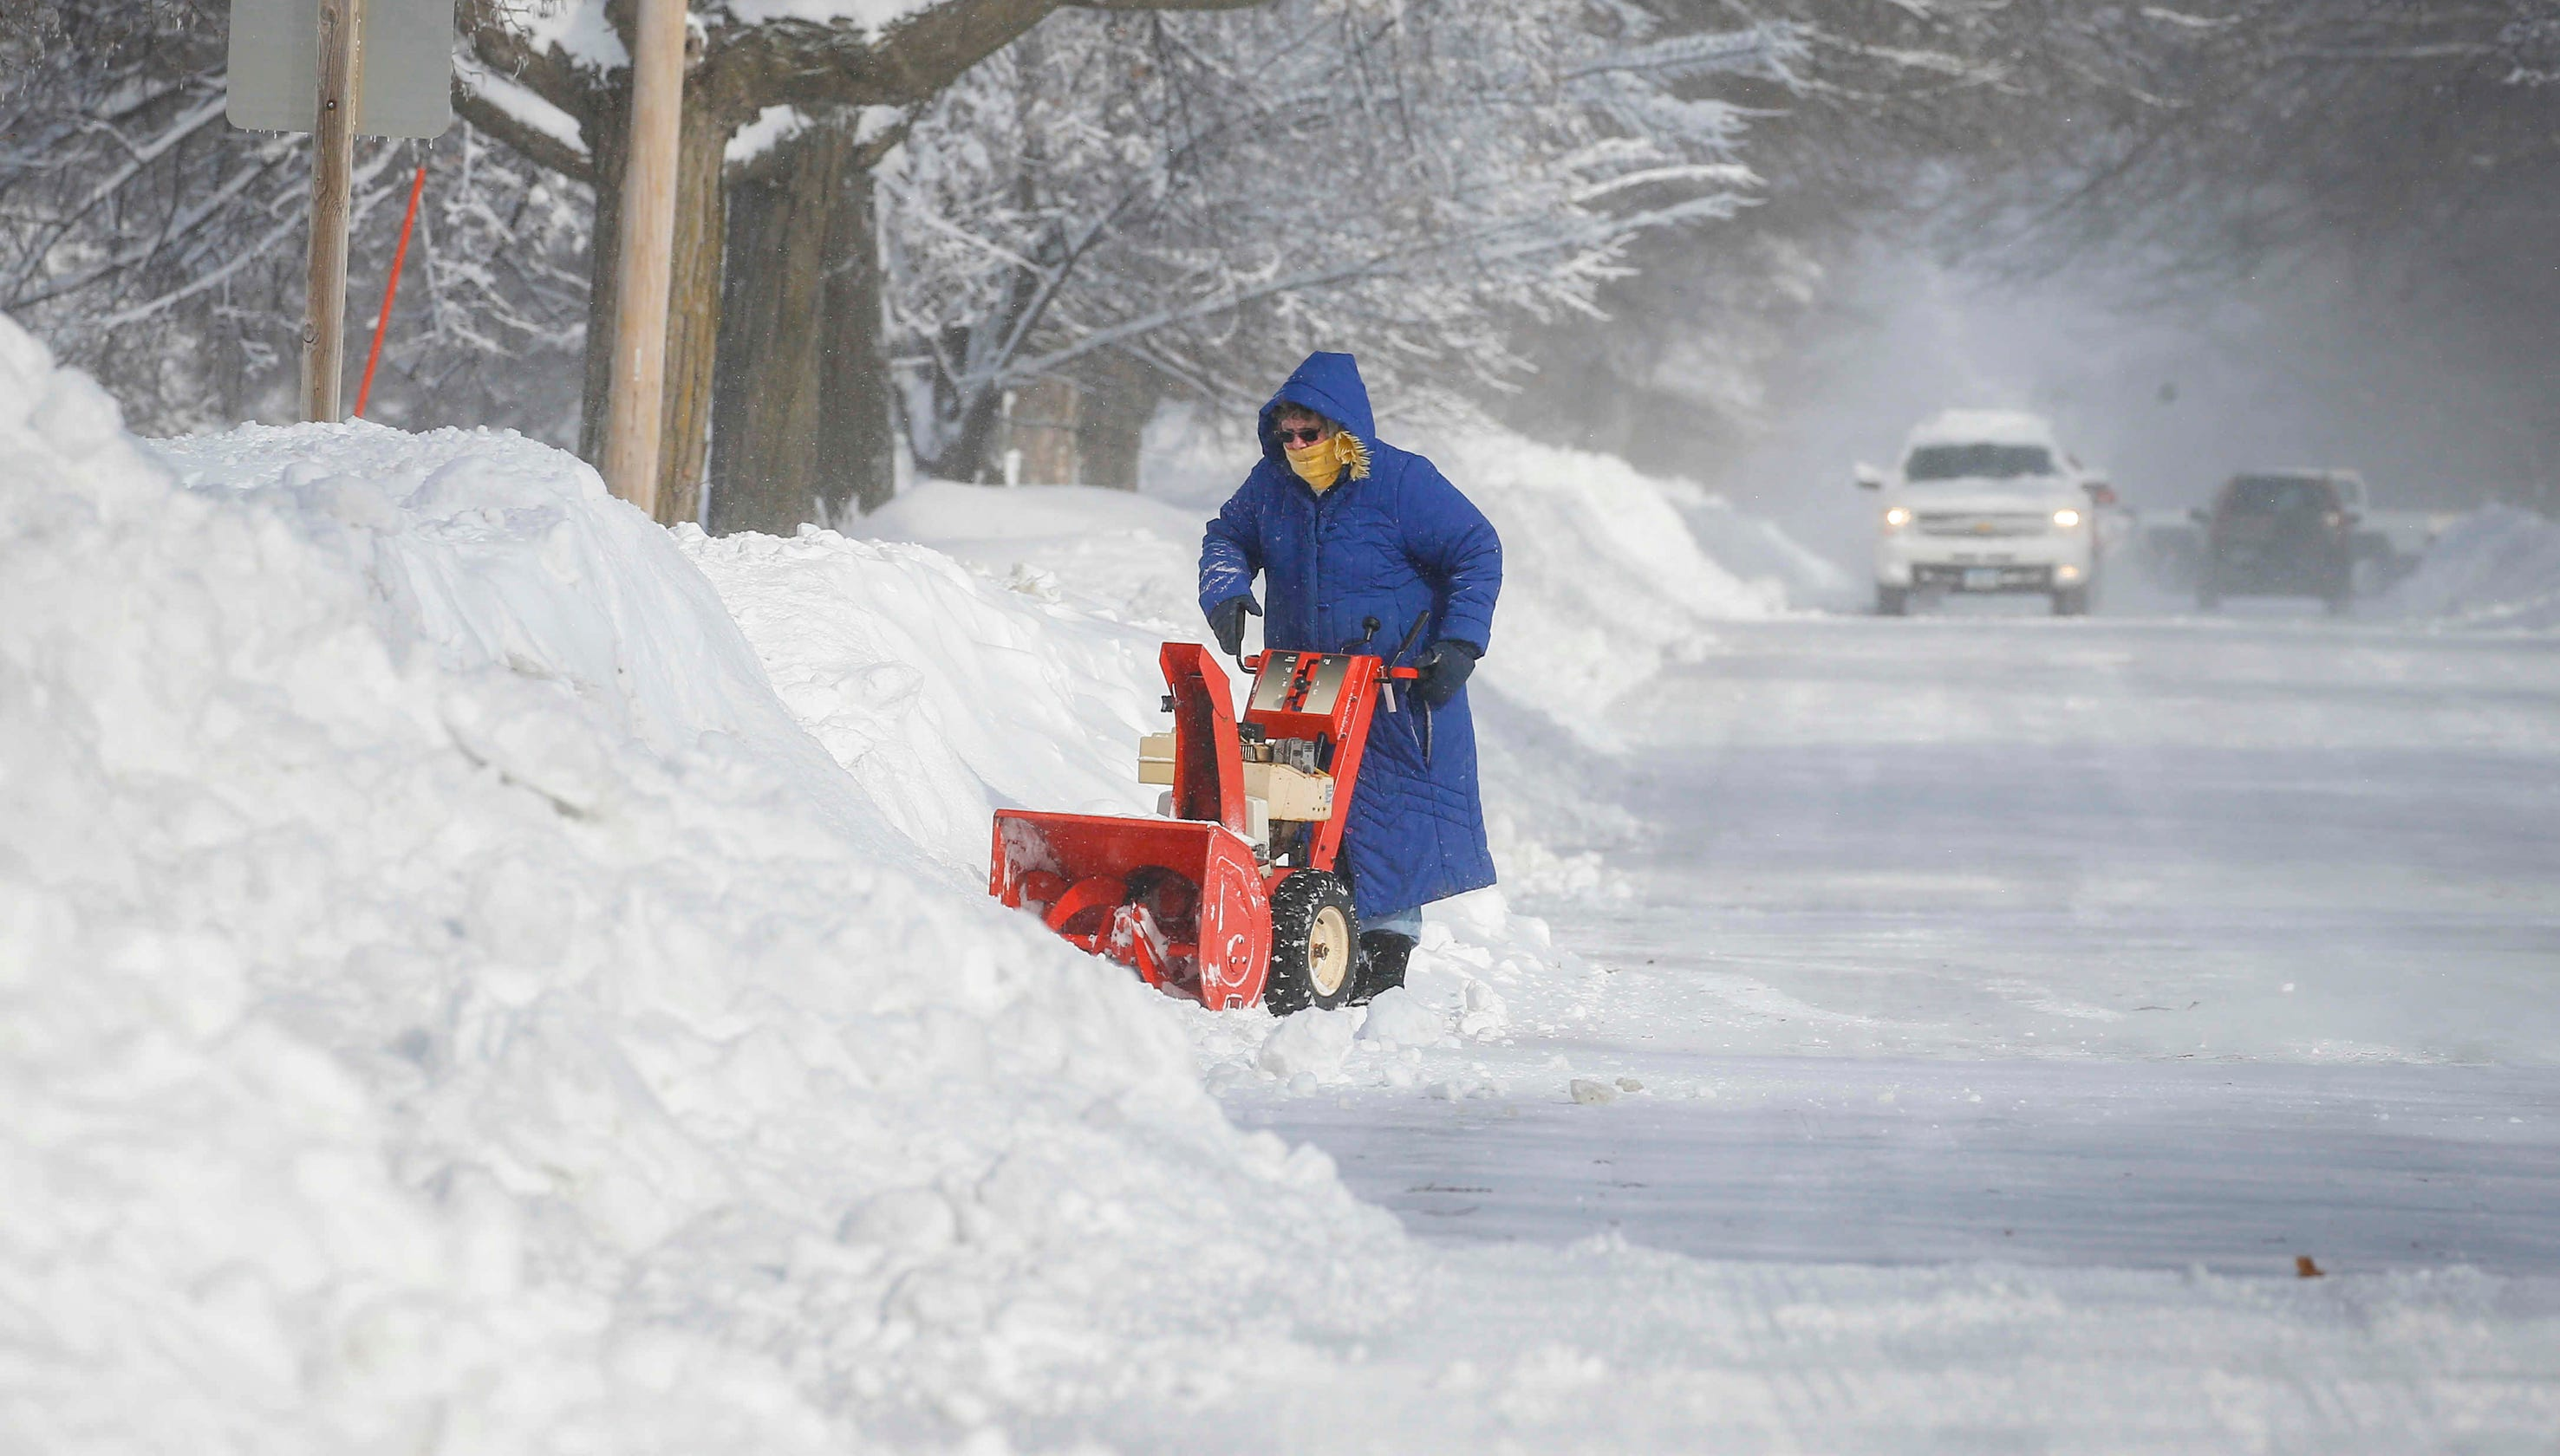 Iowa winter weather: Significant road closures across most